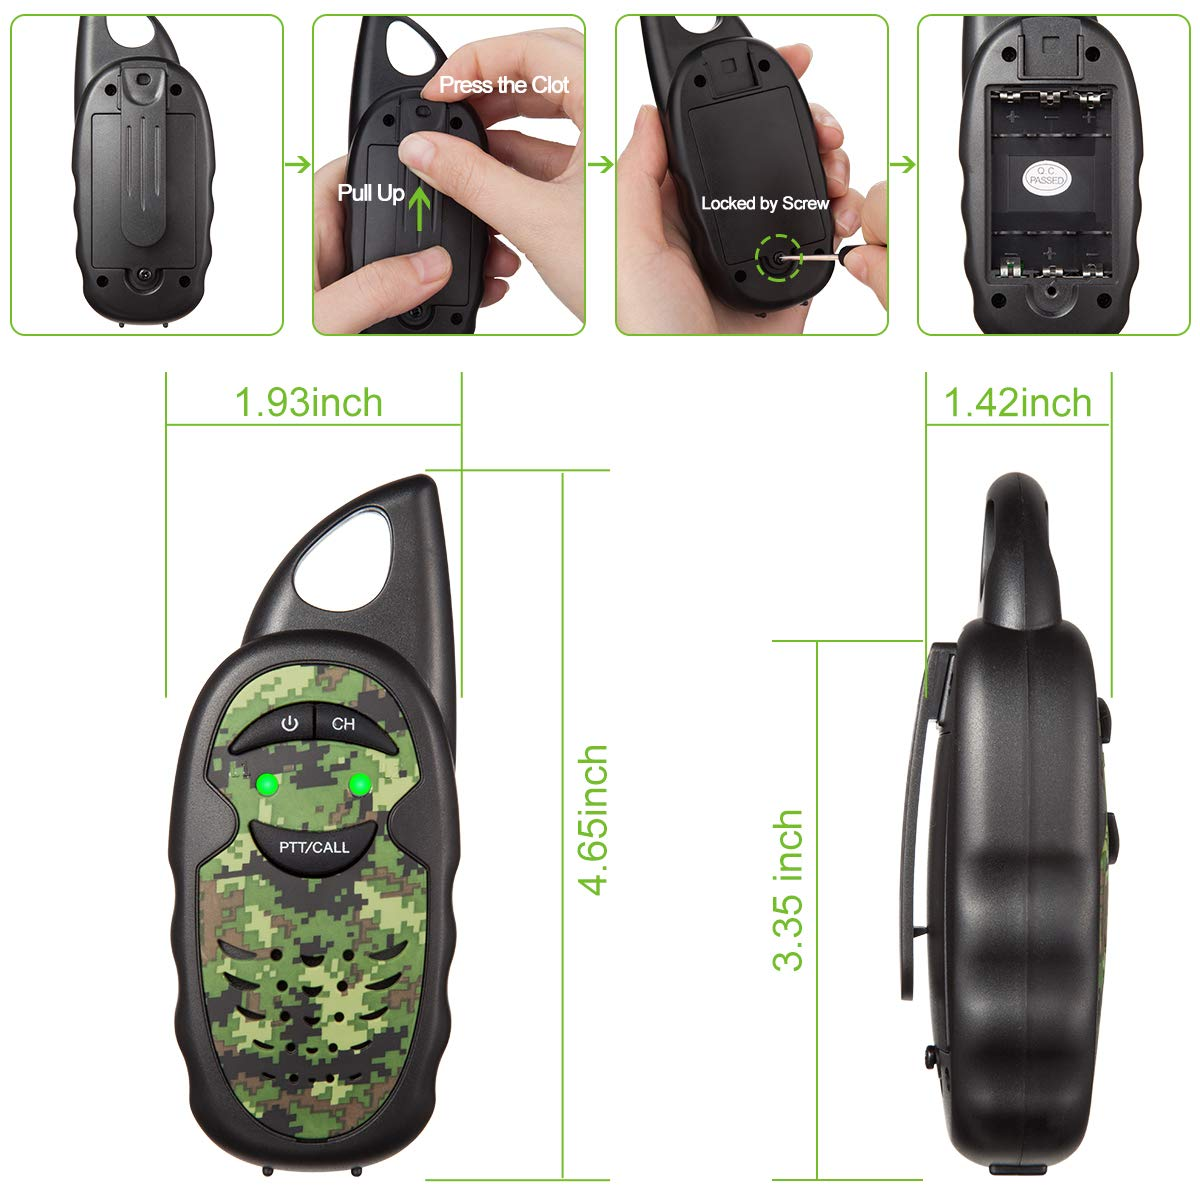 Walkie Talkies for Kids with Binoculars, 2 Mile FRS Technology 2 way radio Toy, Easy to Use for Little Hands Walkie Talkies for Boys, Walkie Talkie Set with Kids Binoculars,Best Toys Gifts for Kids by inYYTer (Image #3)